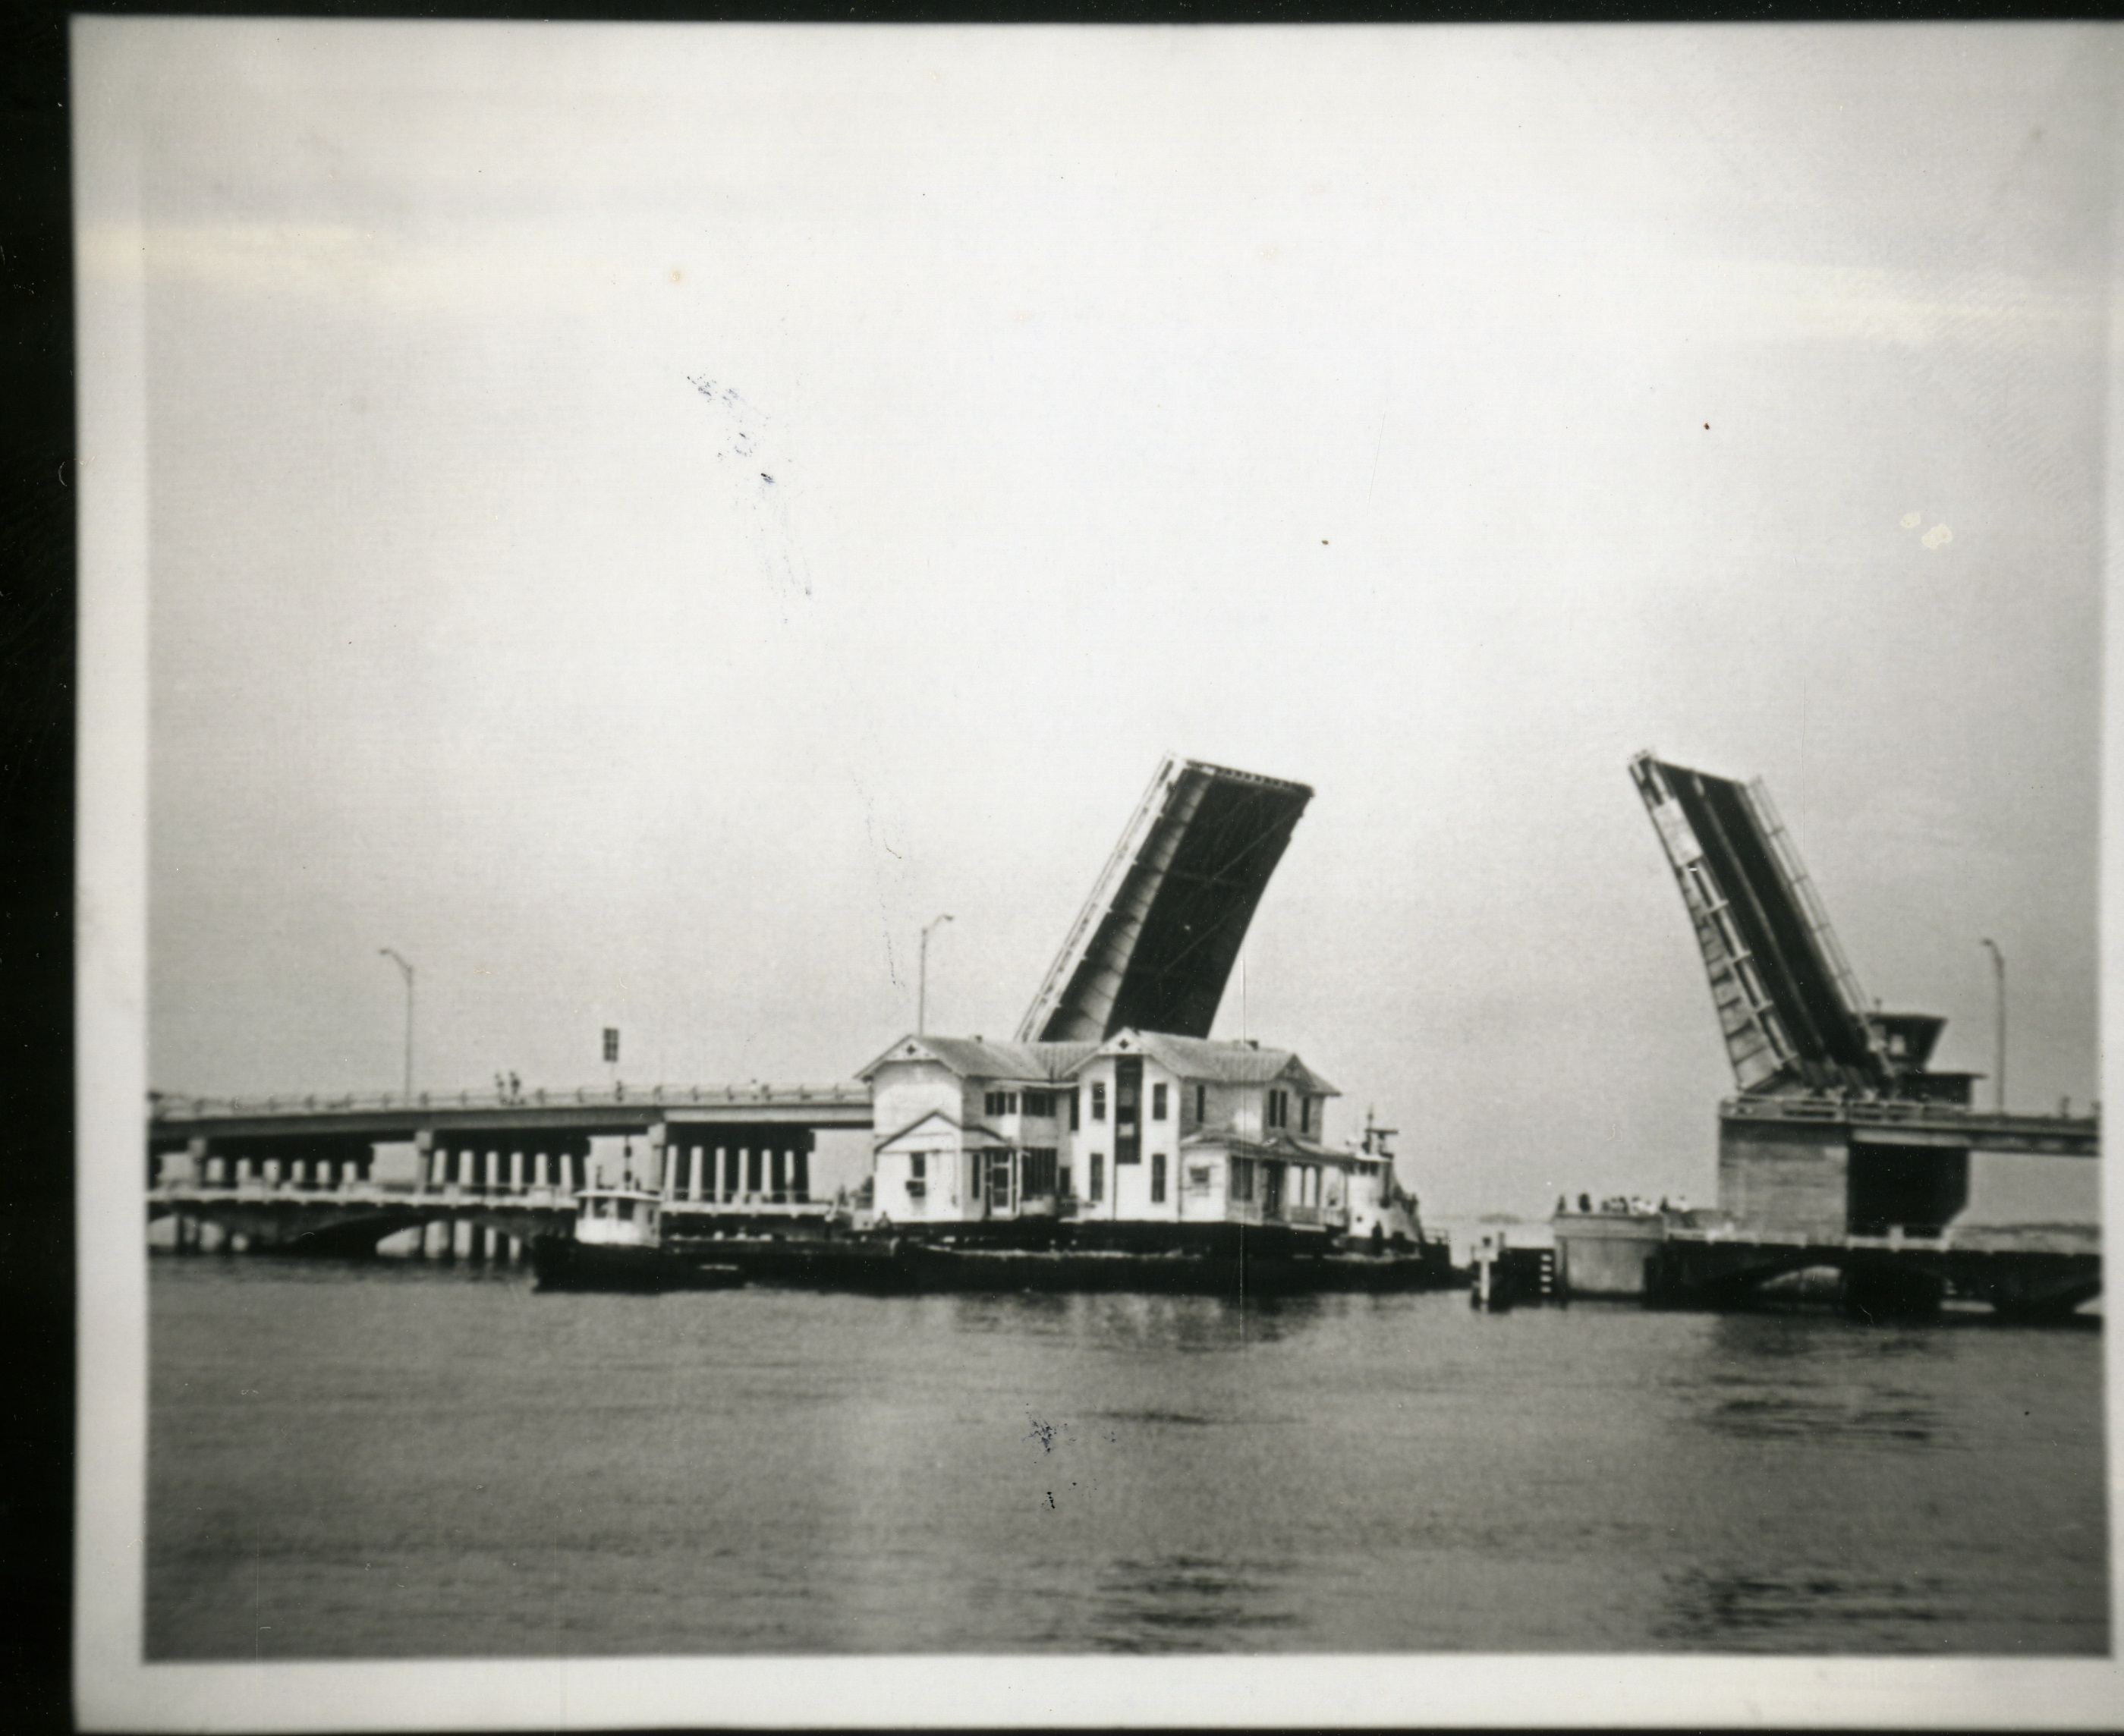 Moving the House of Seven Gables to Heritage Village underneath the Belleair Bridge, 1976.